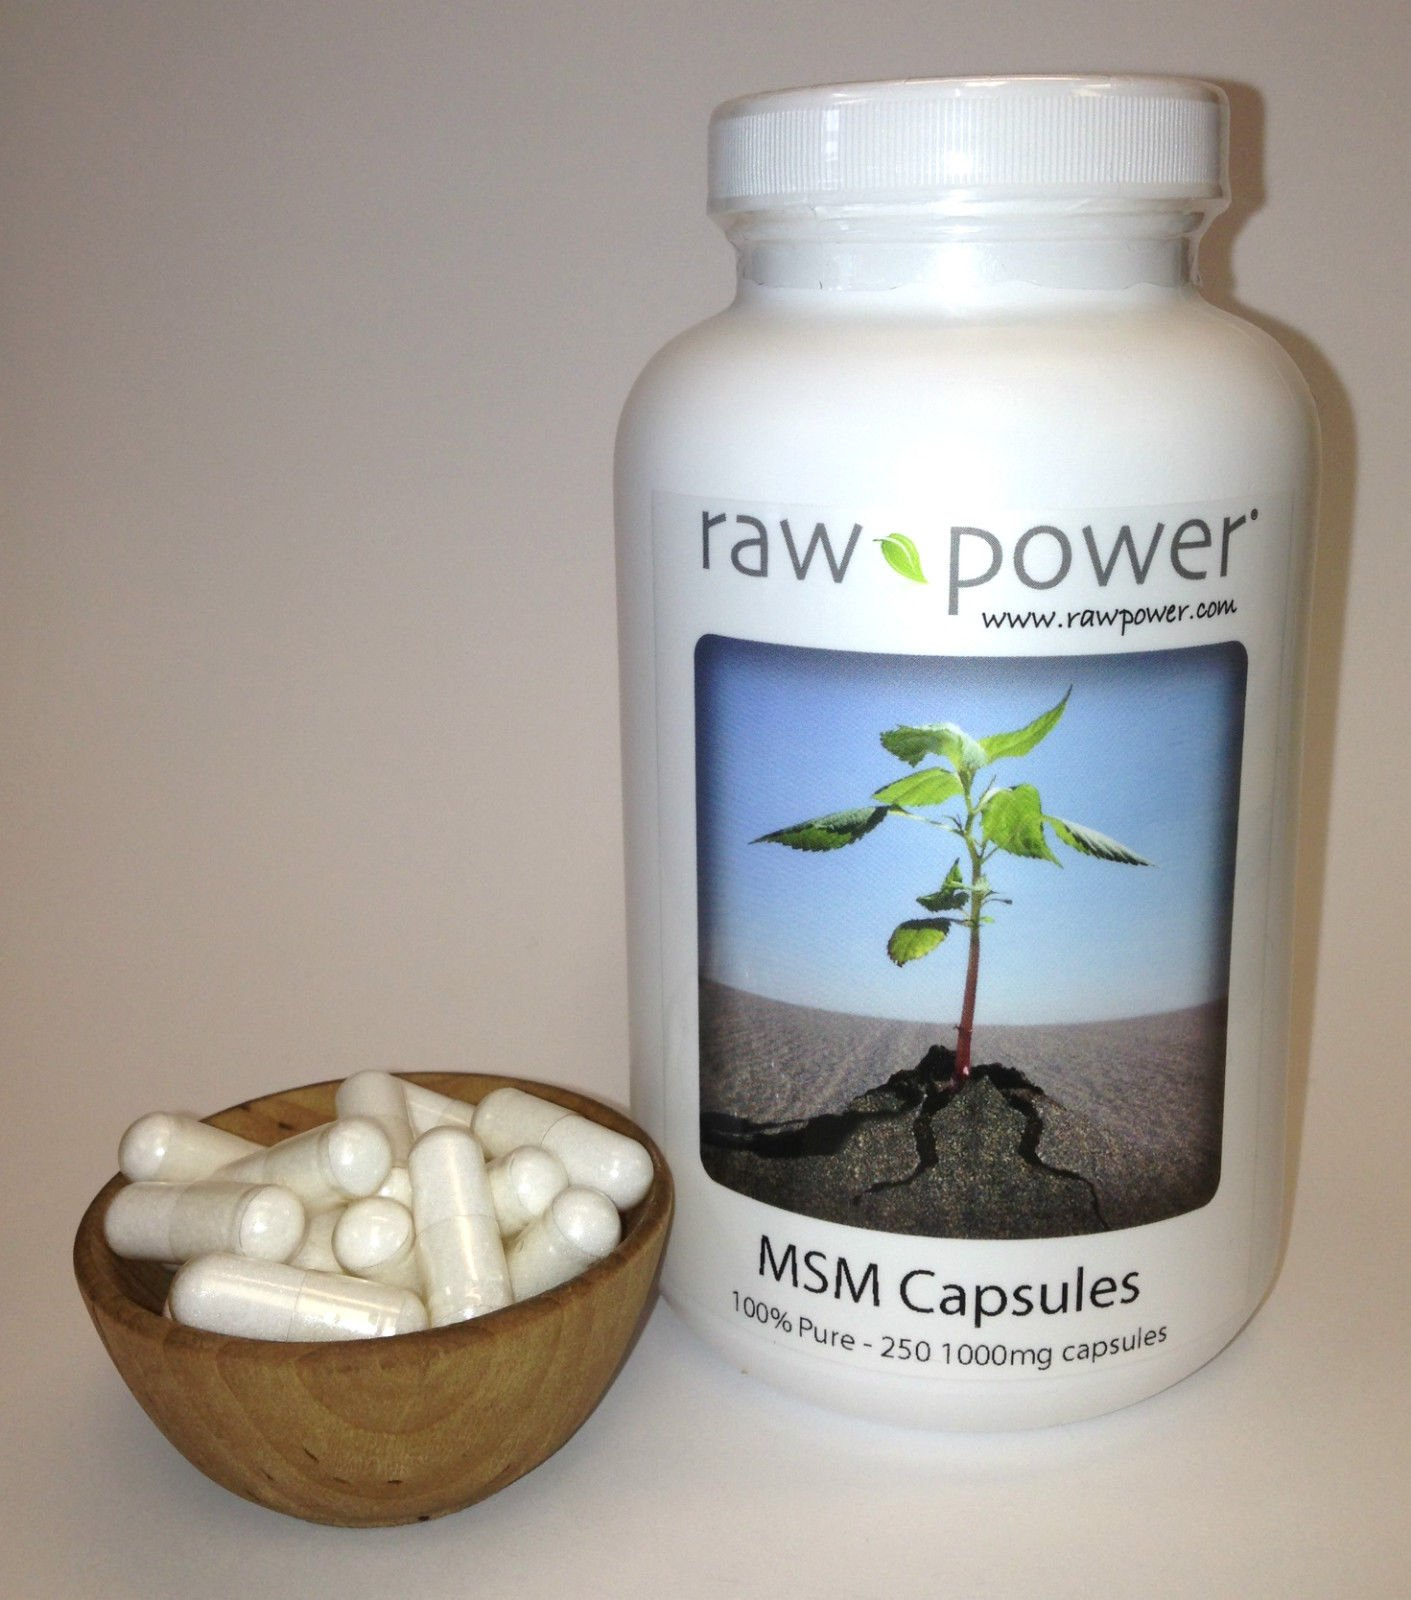 MSM Capsules, 100% pure, Raw Power (250 v-caps, 1000mg each, made in the USA!)